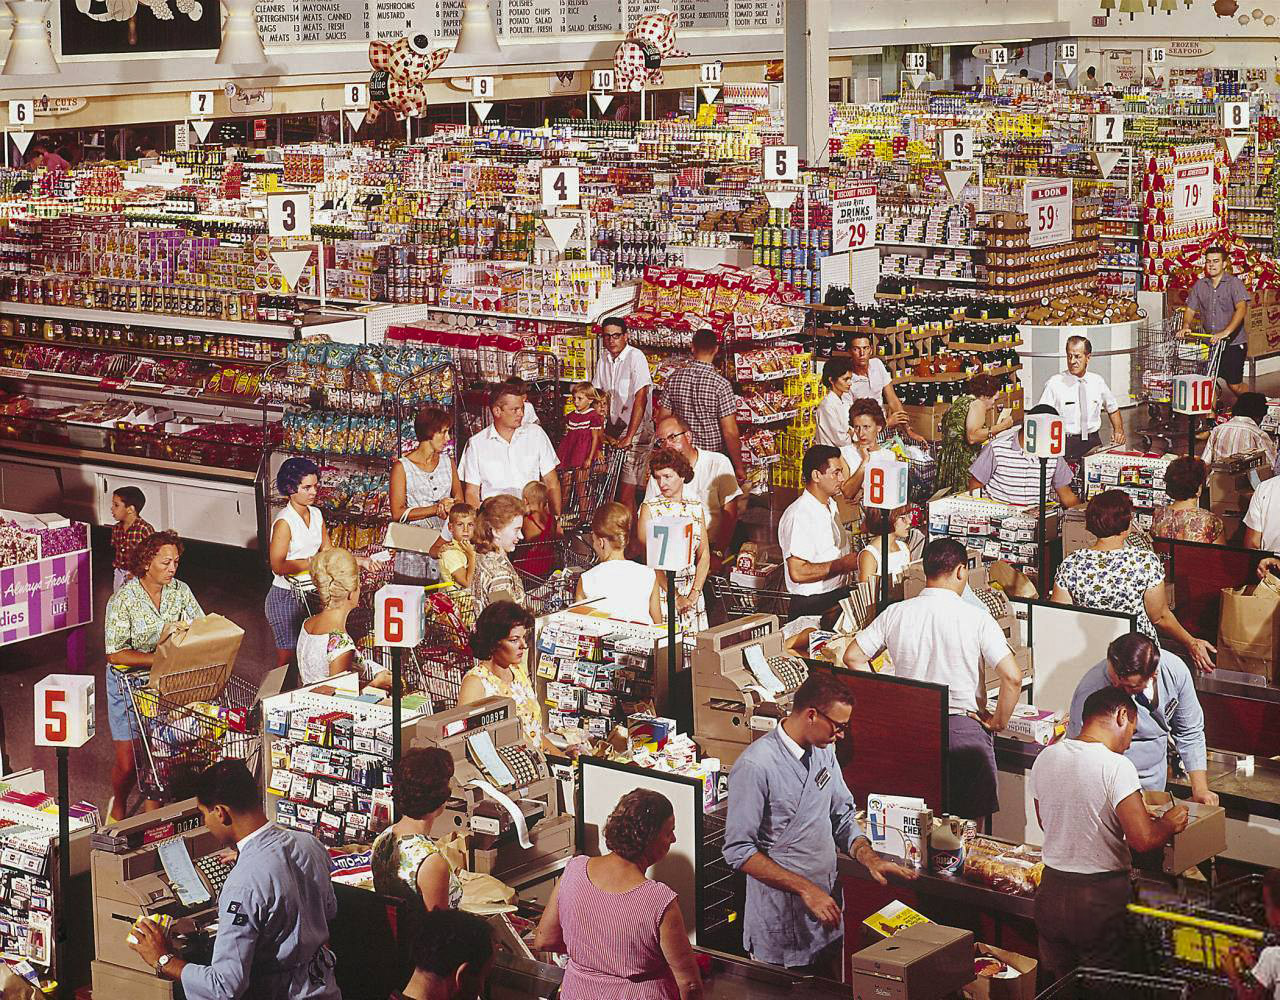 http://static.twoday.net/Gator1/images/The-Super-Giant-supermarket-in-Rockville-Maryland-1964.jpg